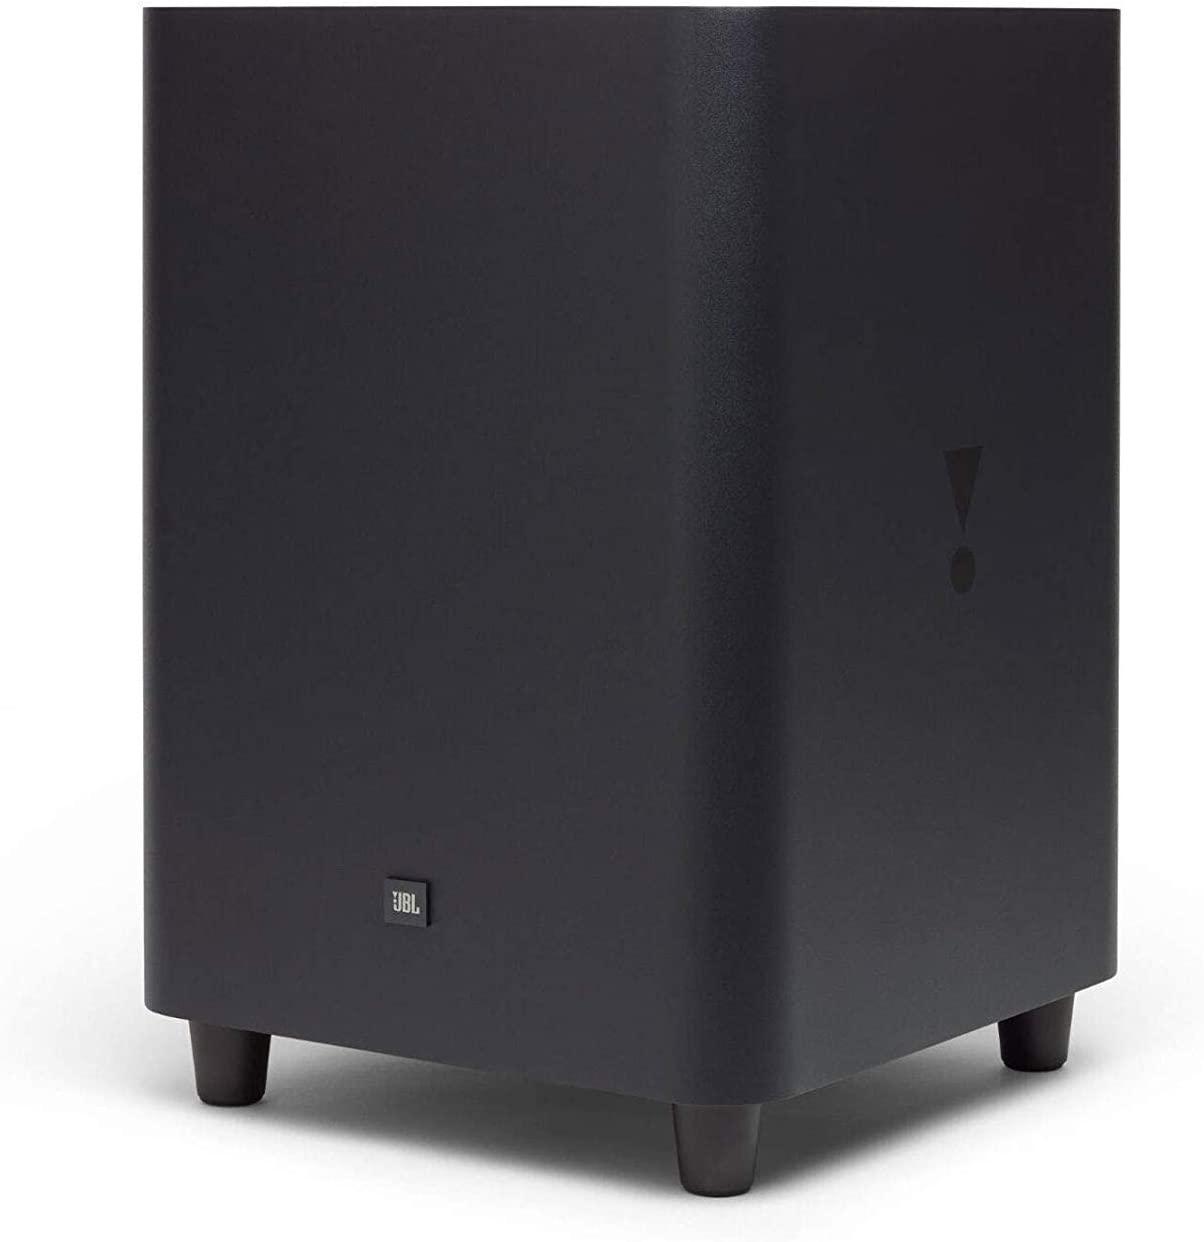 "JBL SW10 10"" Powered Wireless Subwoofer (for Use with JBL Link BAR Only) - Black"